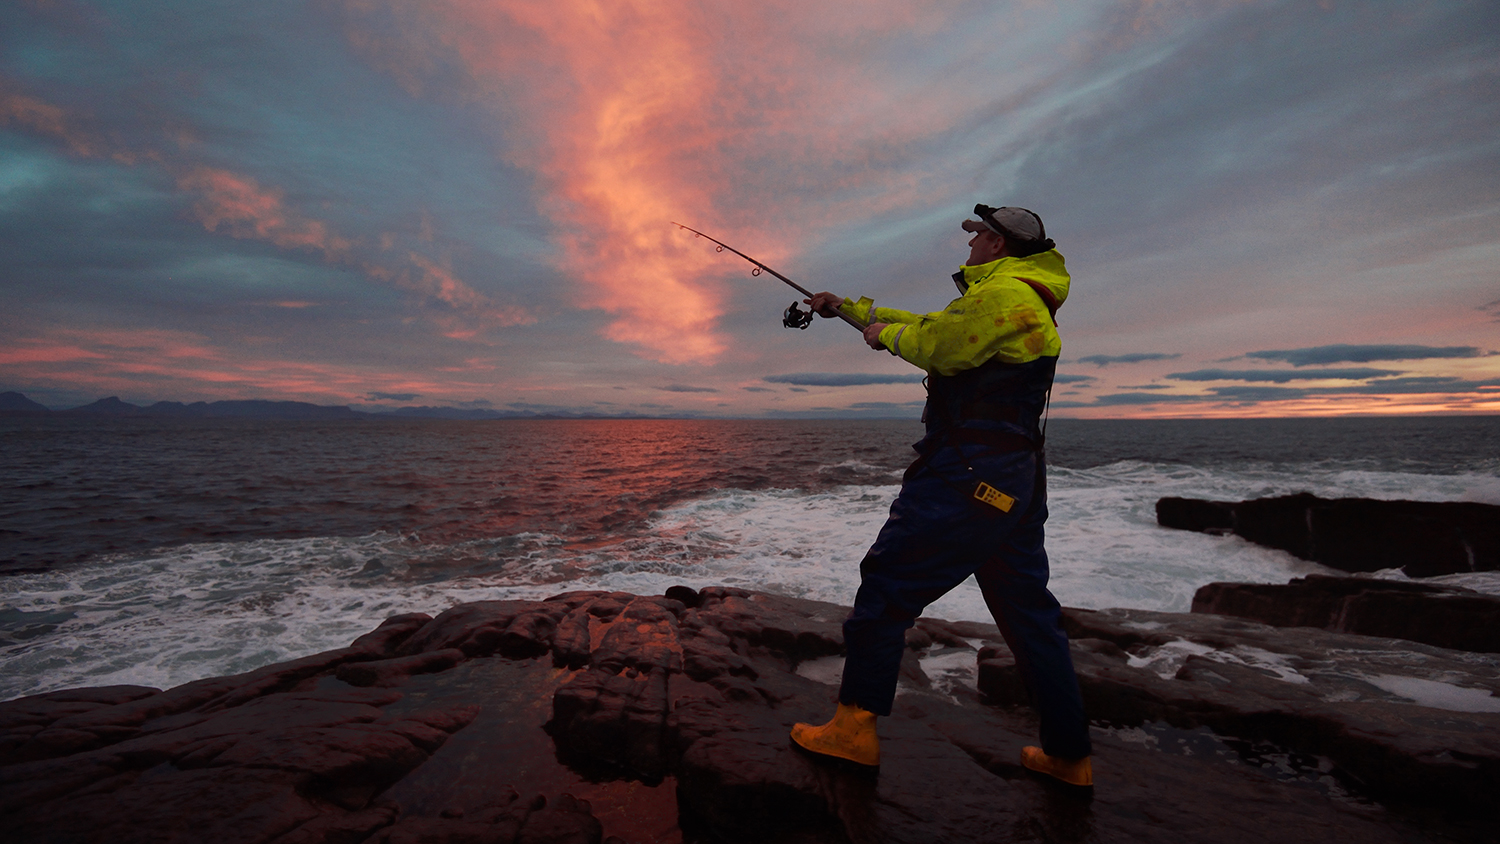 An angler fishing on rocks at sunset in Lochinver